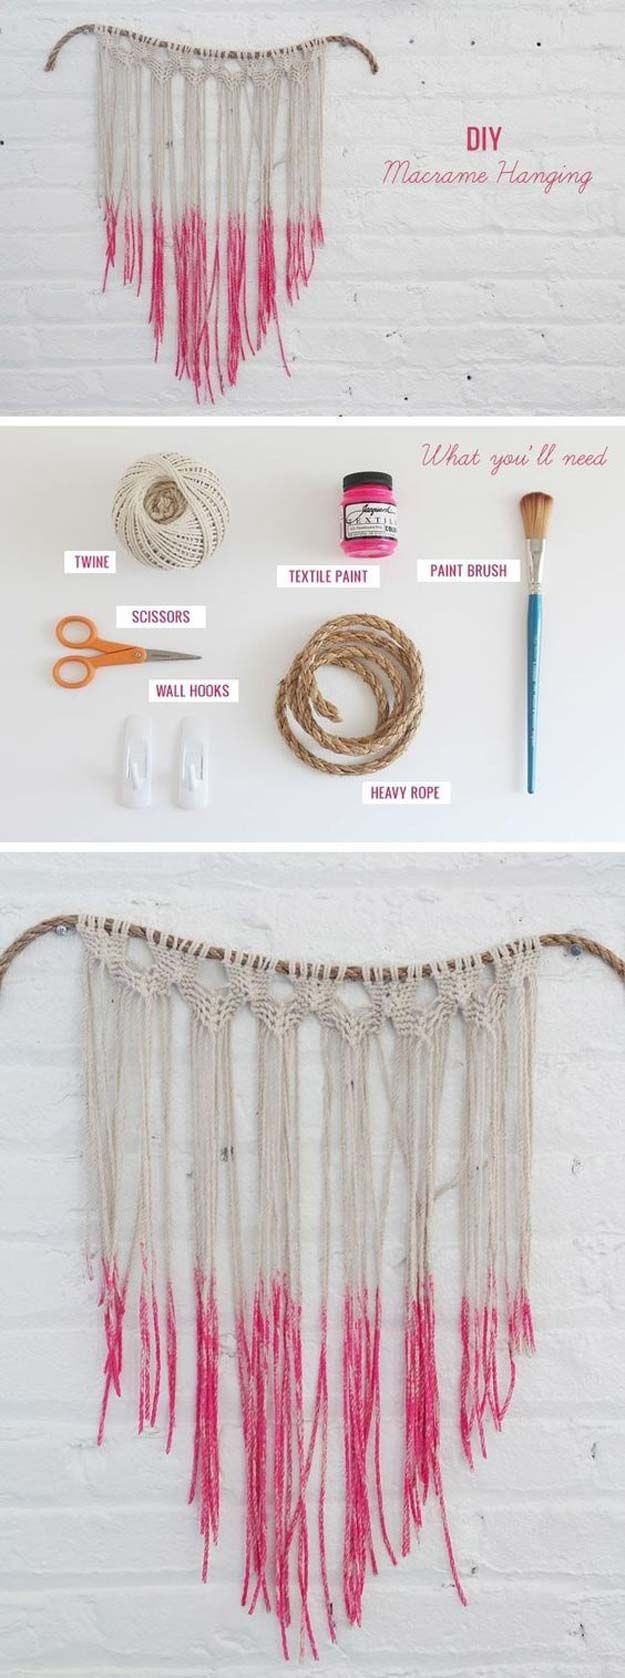 918 best images about diy gifts for teens on pinterest for Bedroom wall decor crafts